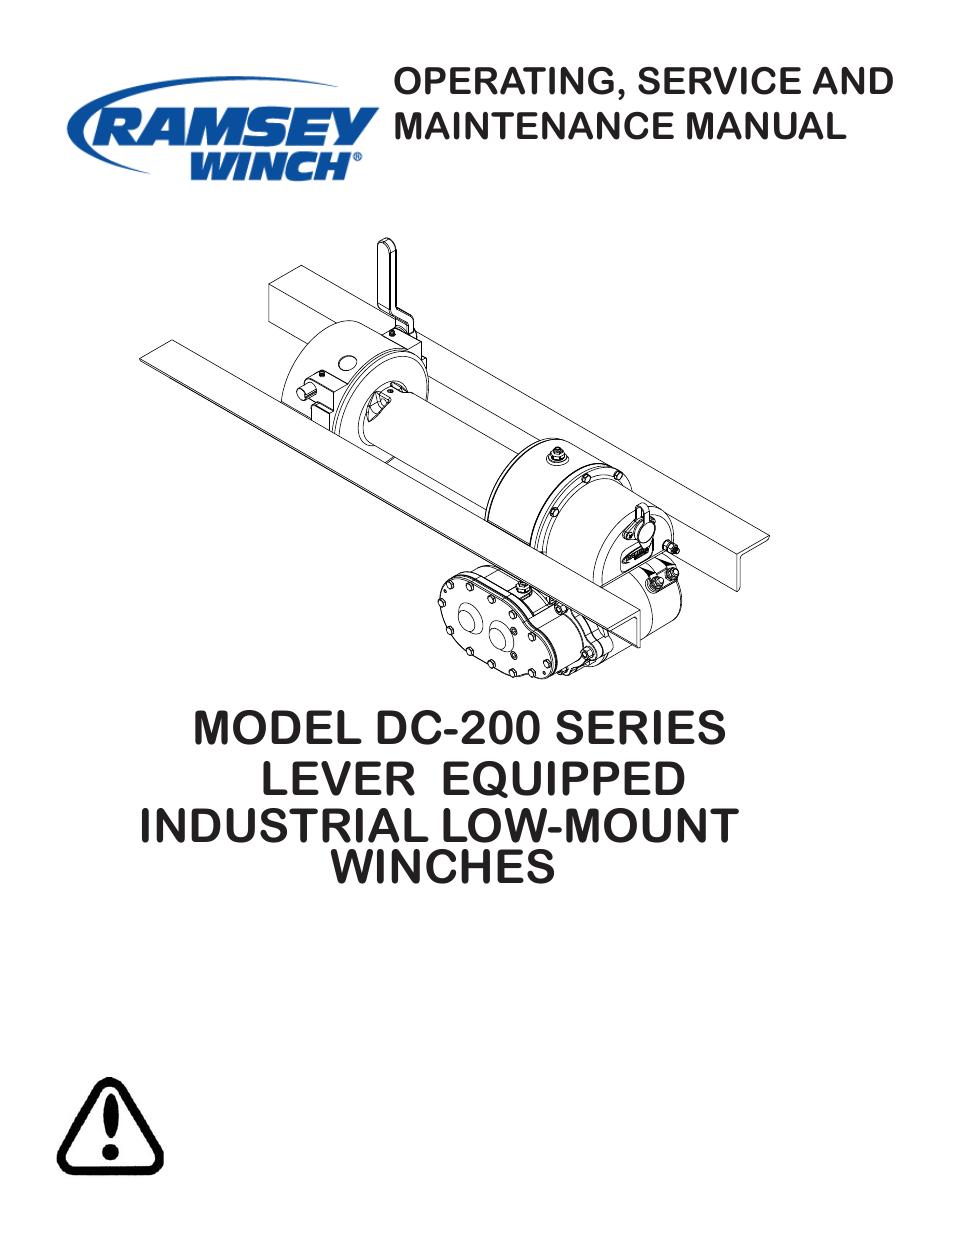 hight resolution of ramsey winch manual